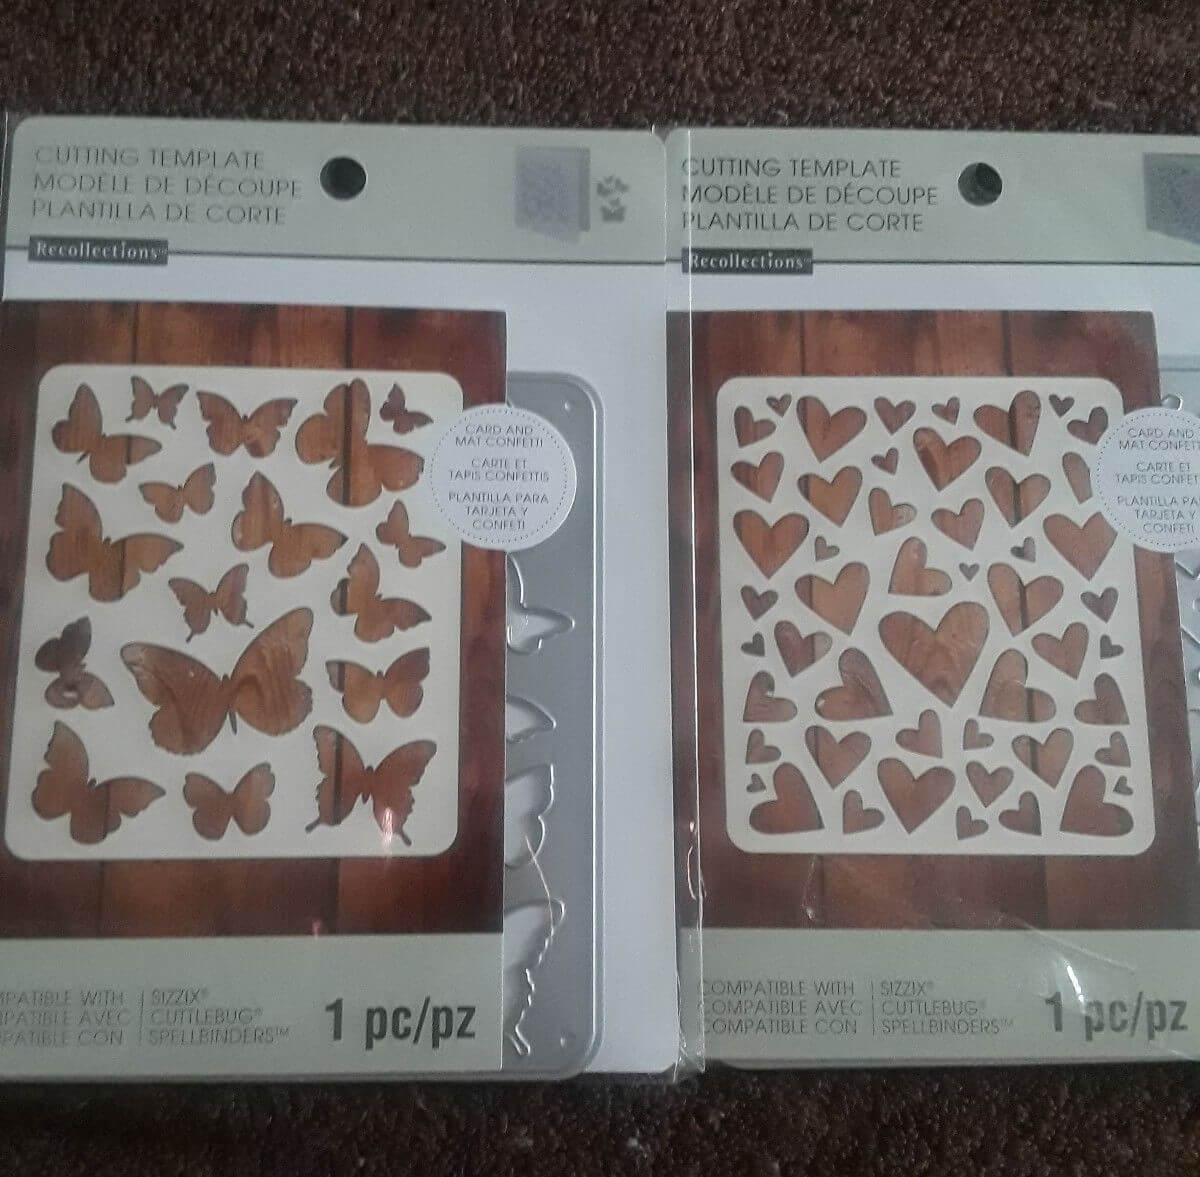 Recollections Cutting Template Butterfly 1 Piece Hearts 1 Piece regarding Recollections Card Template